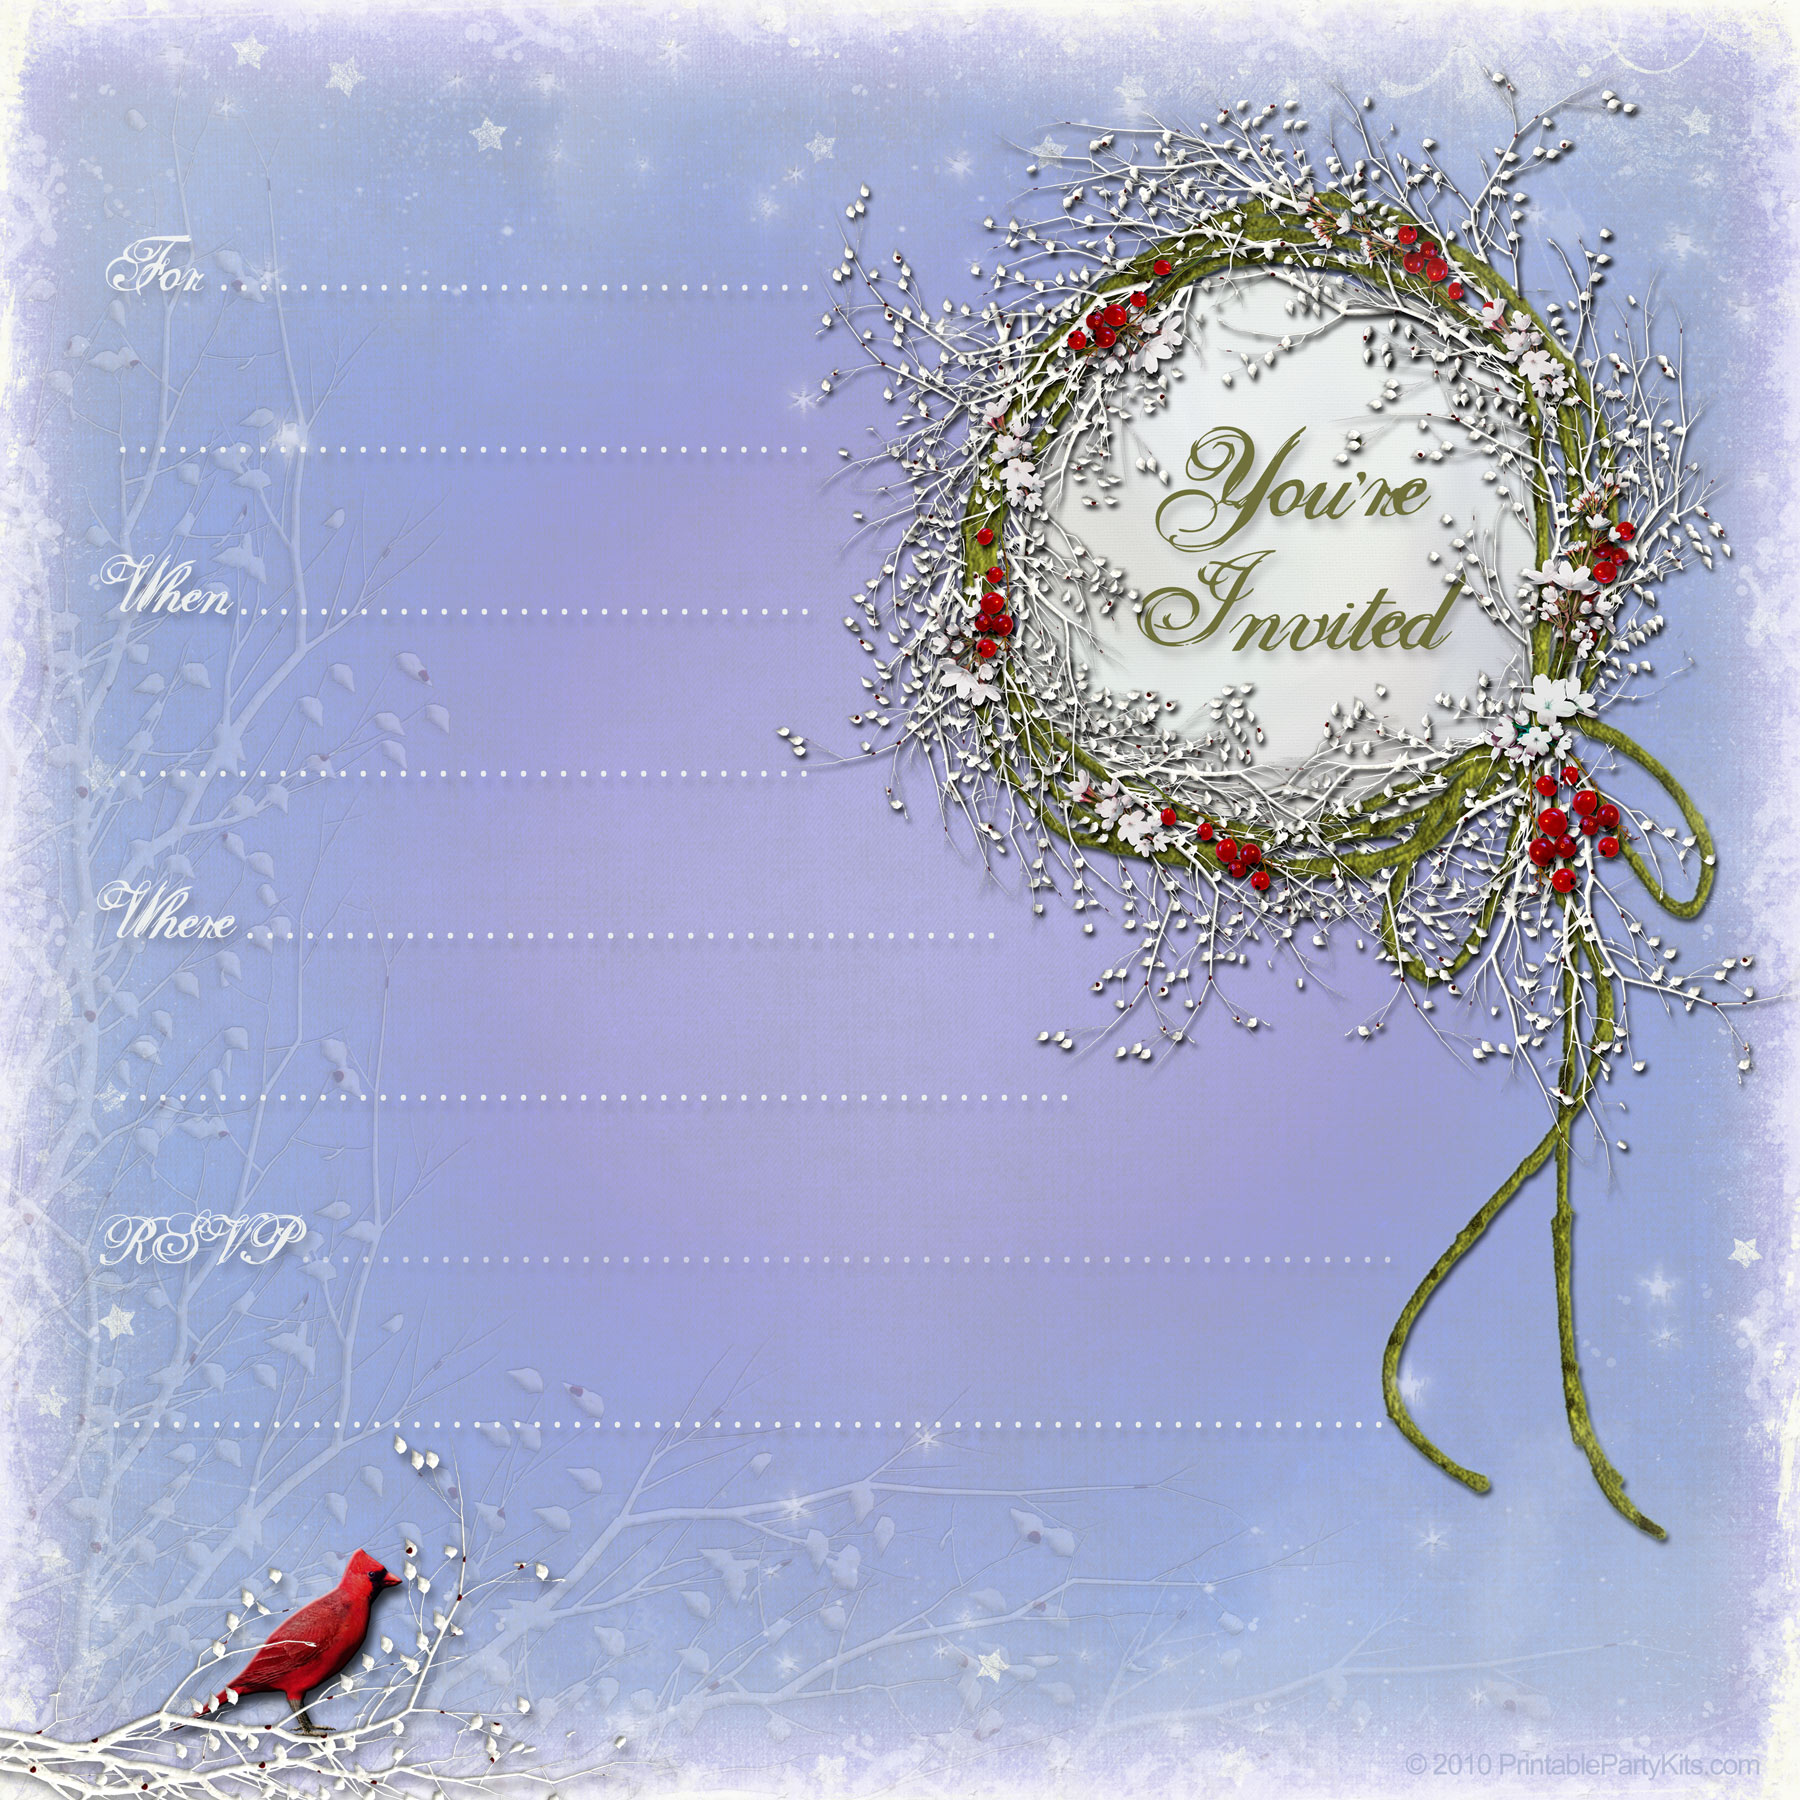 ... image to enlarge and download the winter party invitation template